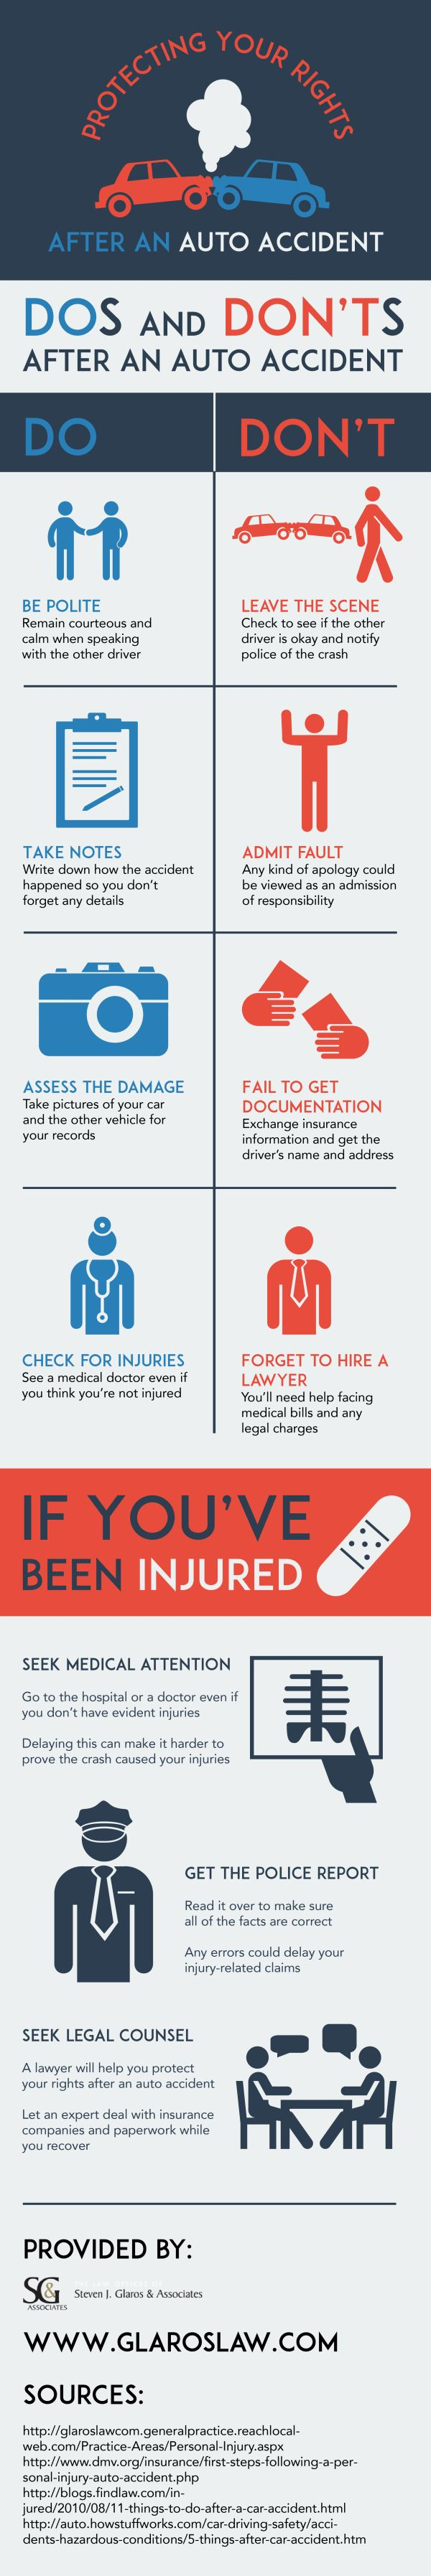 It is important to stay at the scene after an auto accident check for injuries insurance companieslife insurancebest